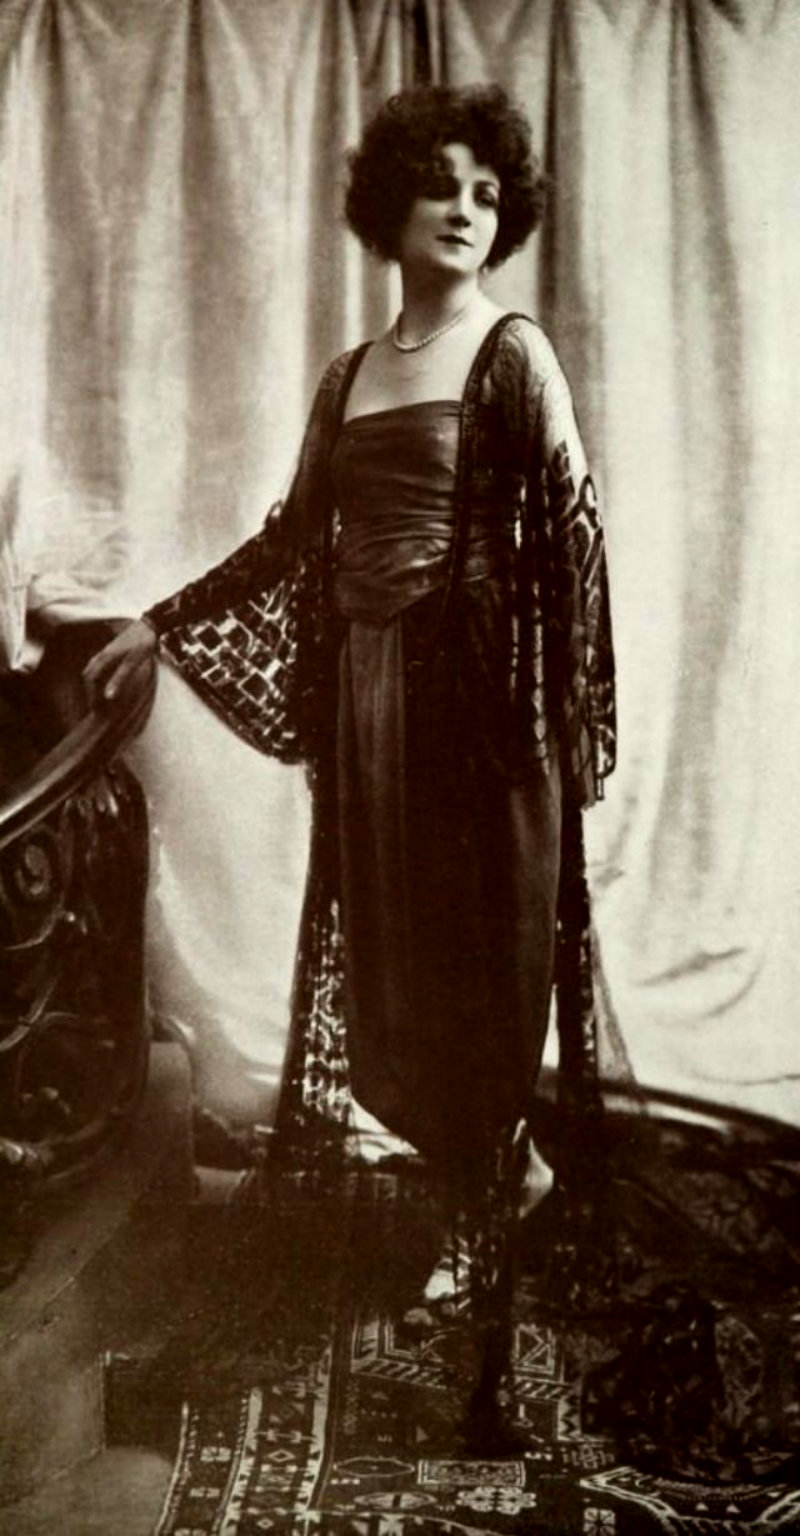 women-in-evening-gowns-during-the-1920s-11